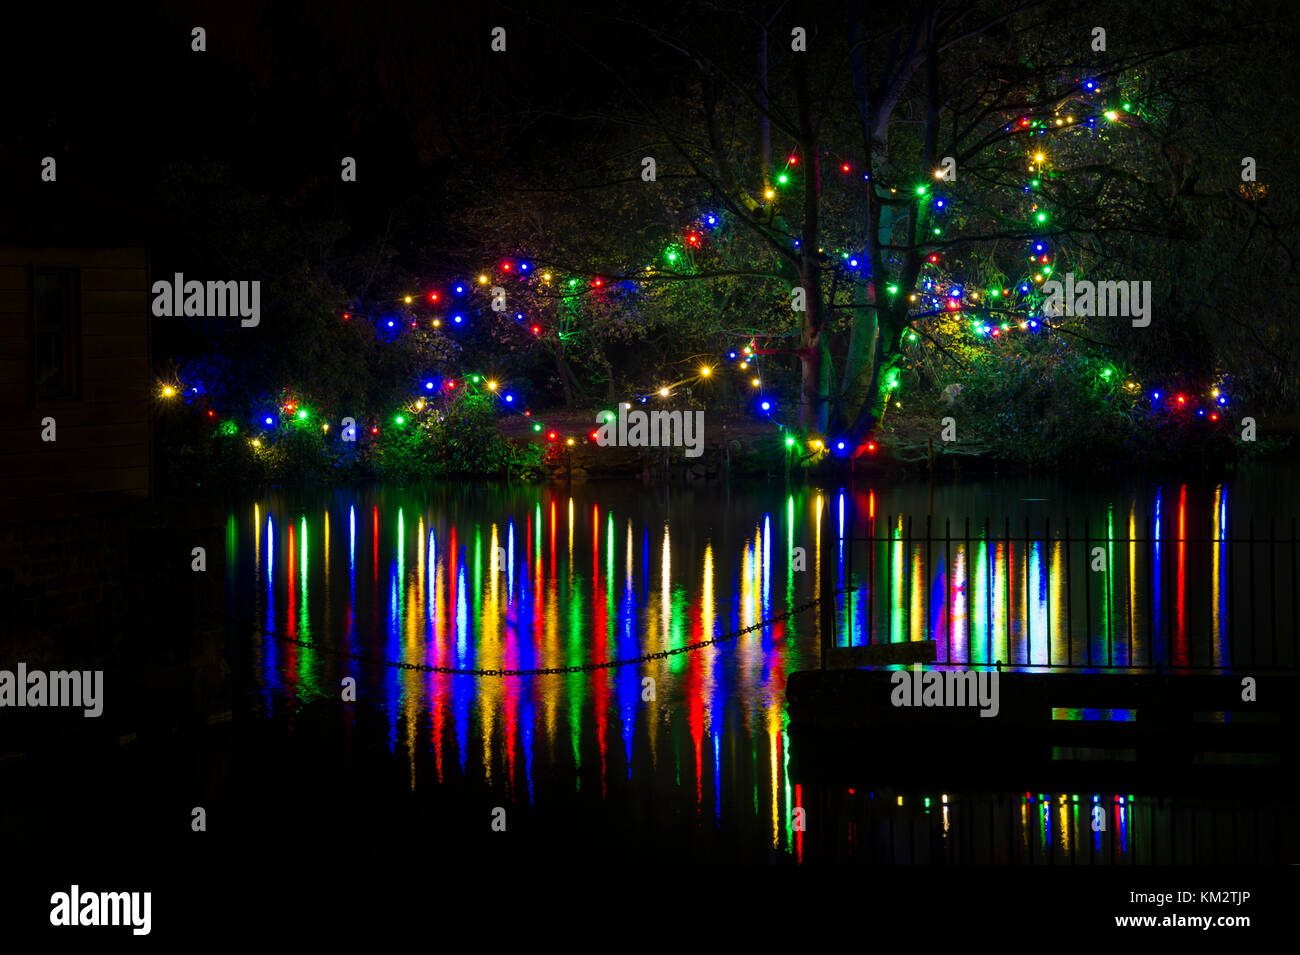 The Christmas Lights on the island of Nafferton Mere reflected in the water near Driffield in East Yorkshire - Stock Image